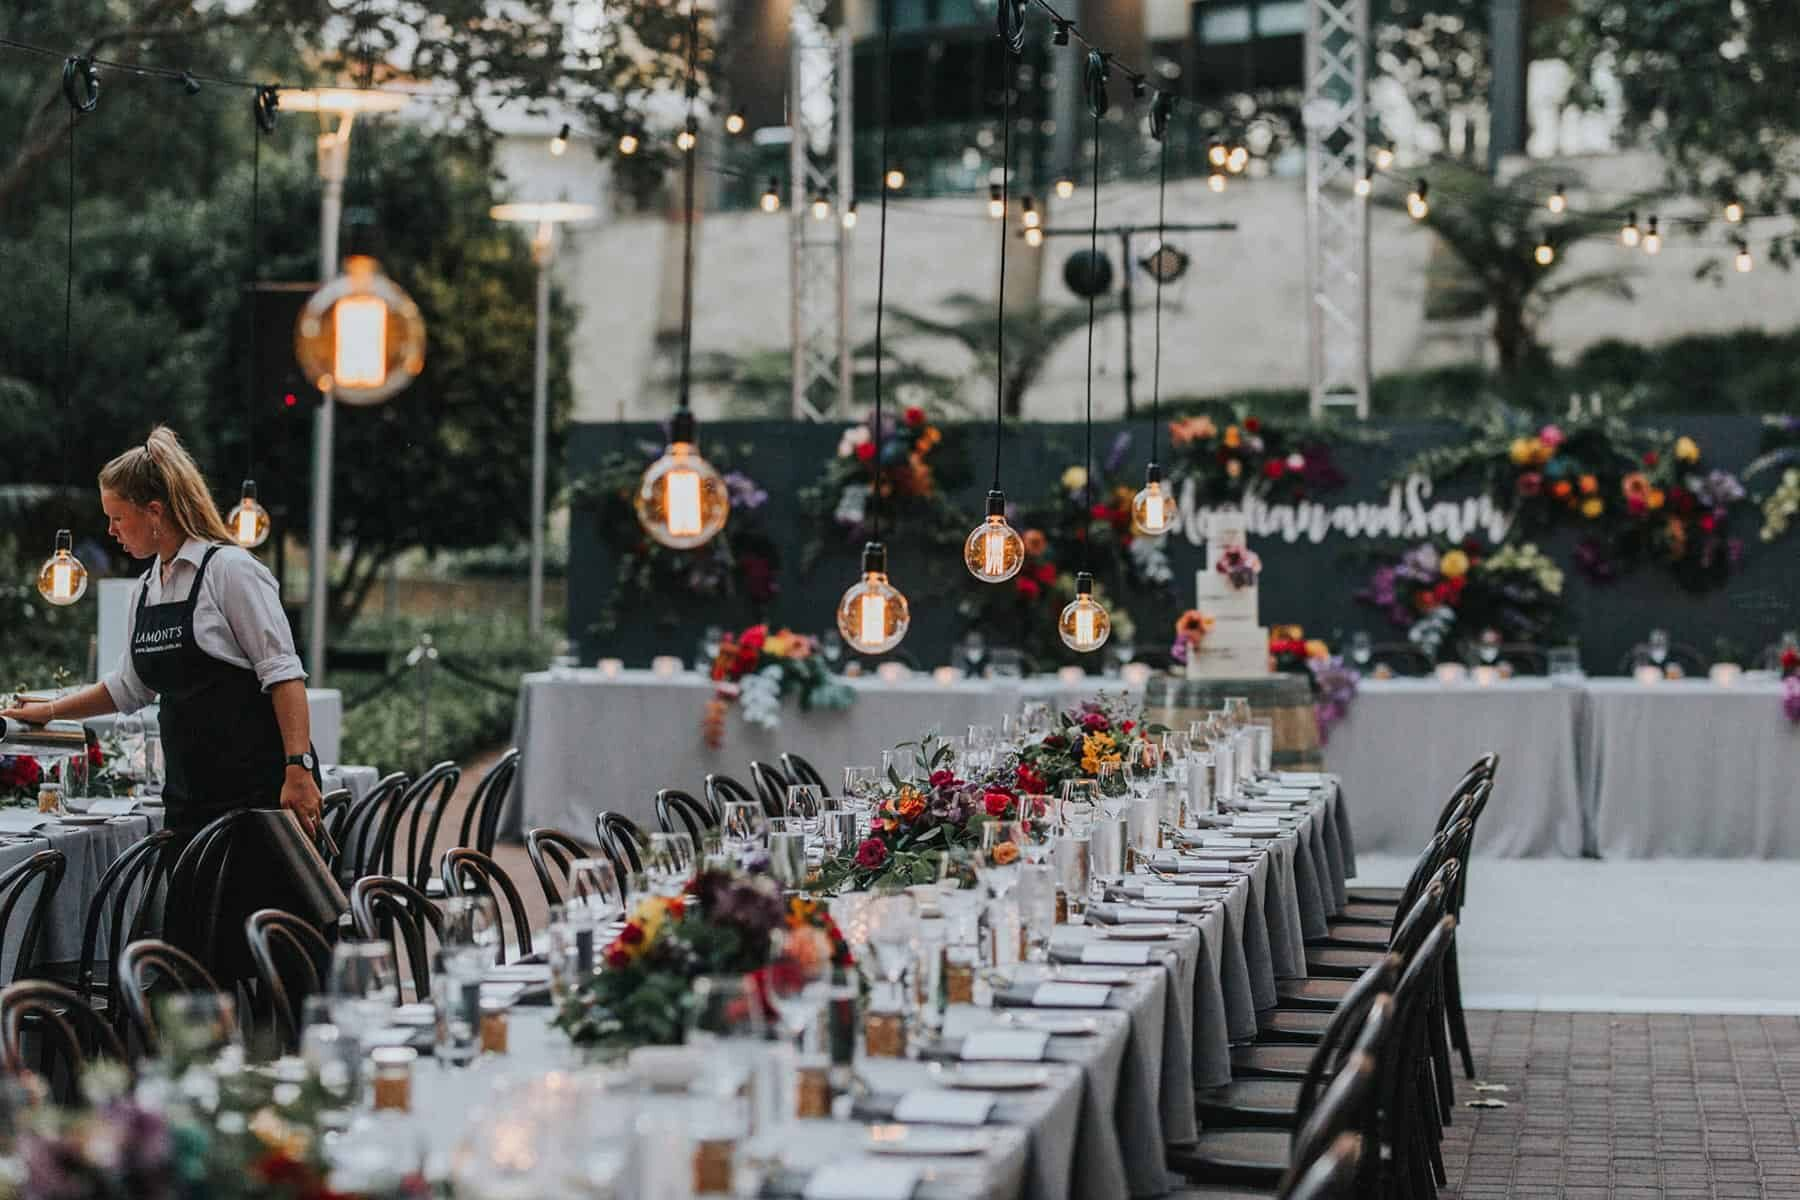 floral tablescape with overhanging lights